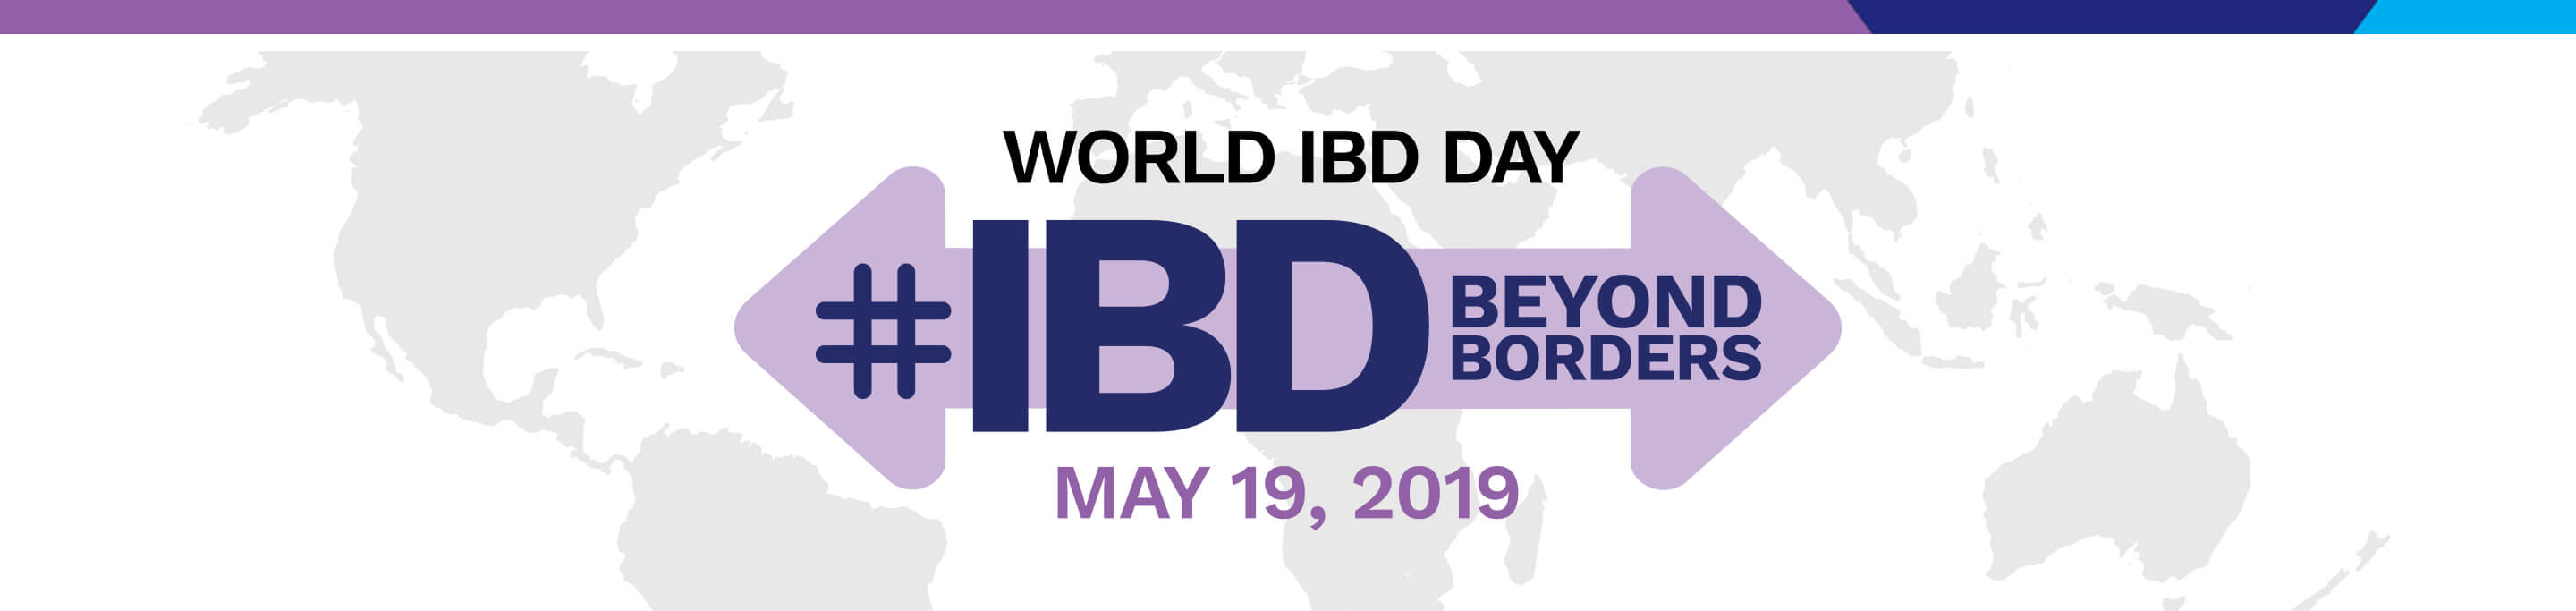 Crohn's & Colitis World IBD Day 2019